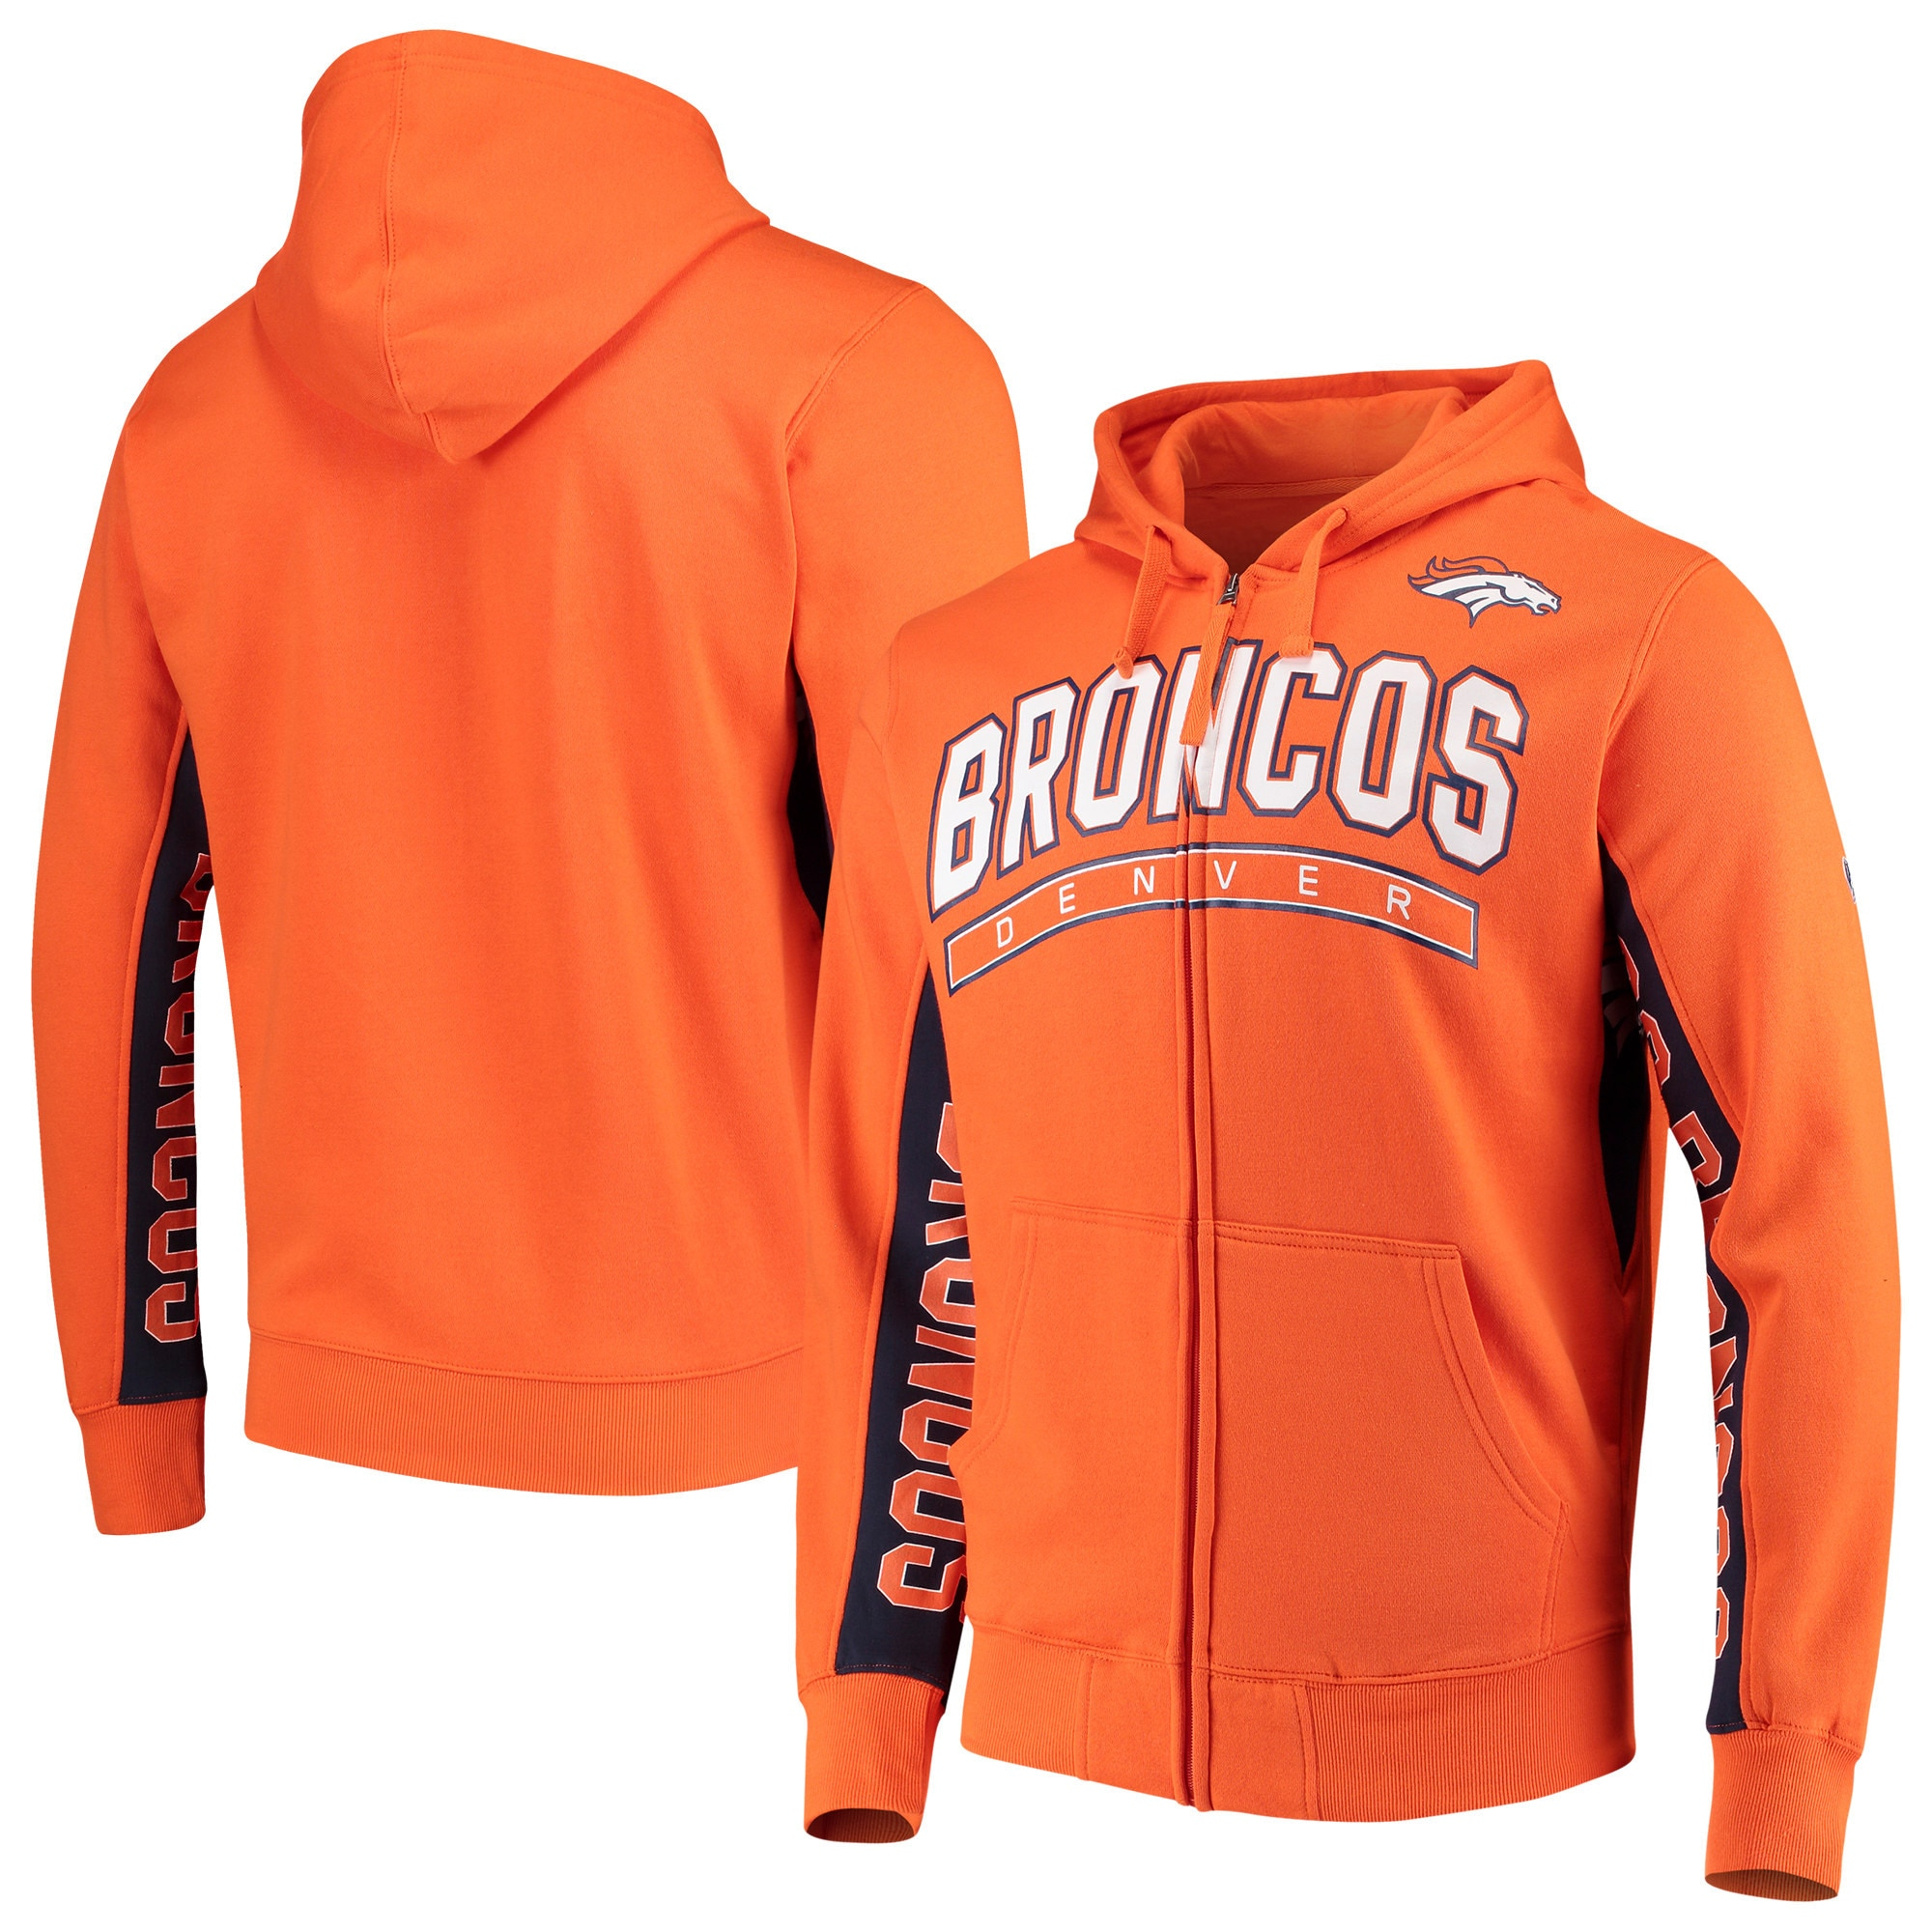 Denver Broncos Hands High Blowout Full-Zip Hoodie - Orange/Navy